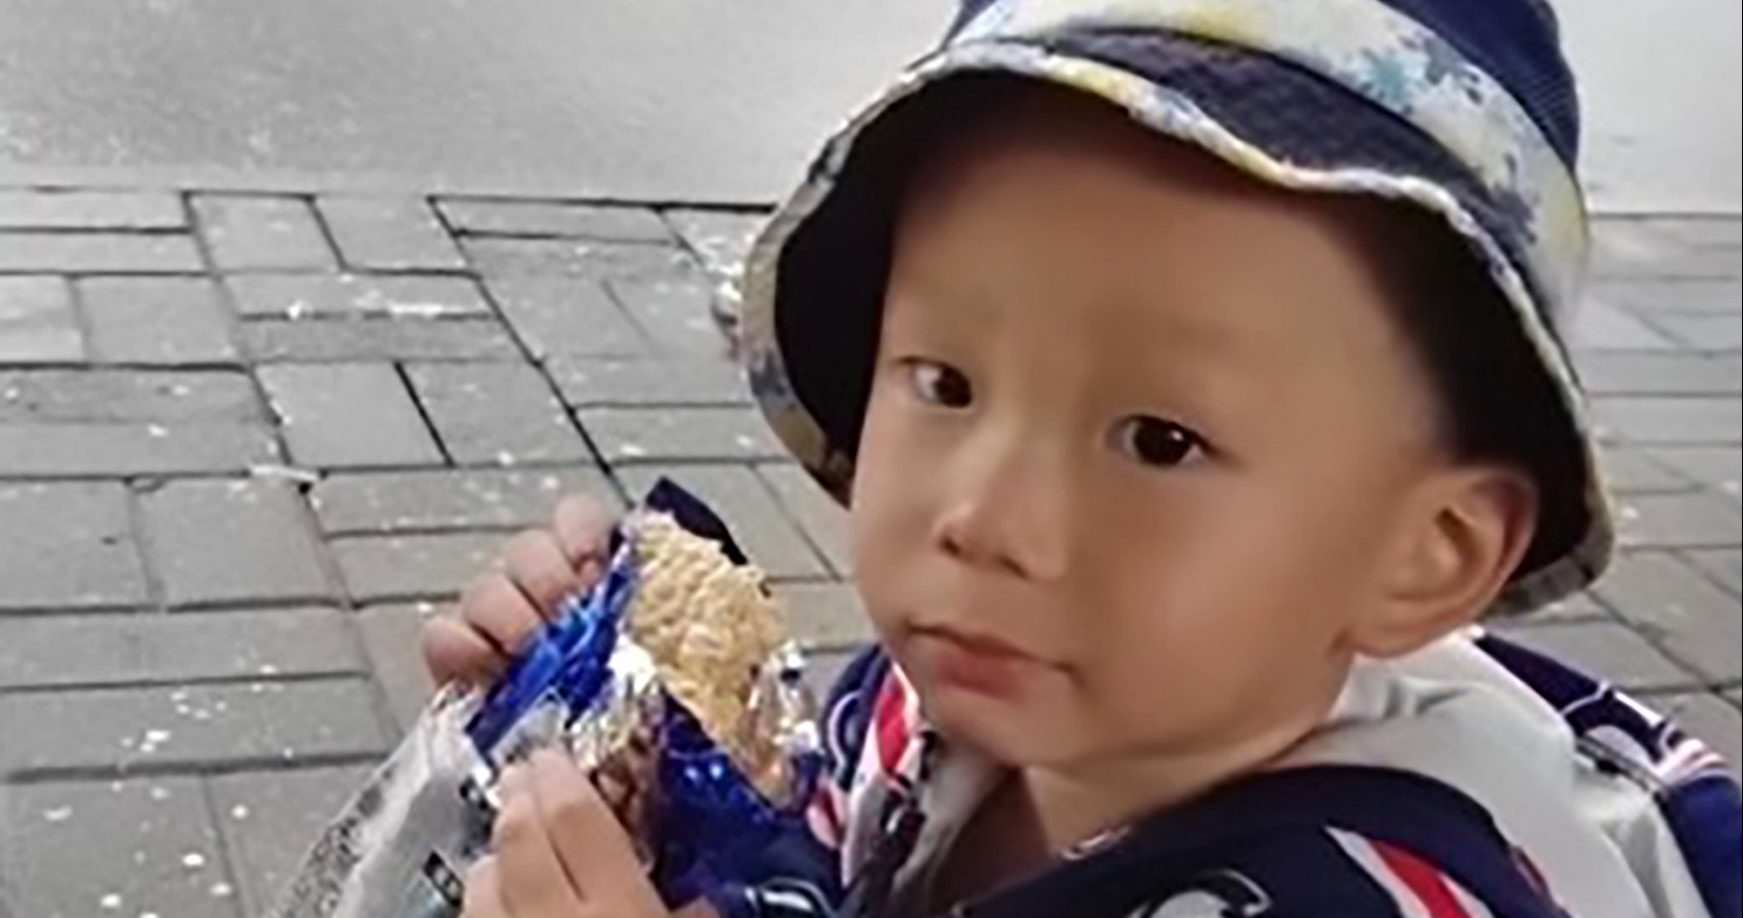 Boy, 4, died after being left in van for more than seven hours